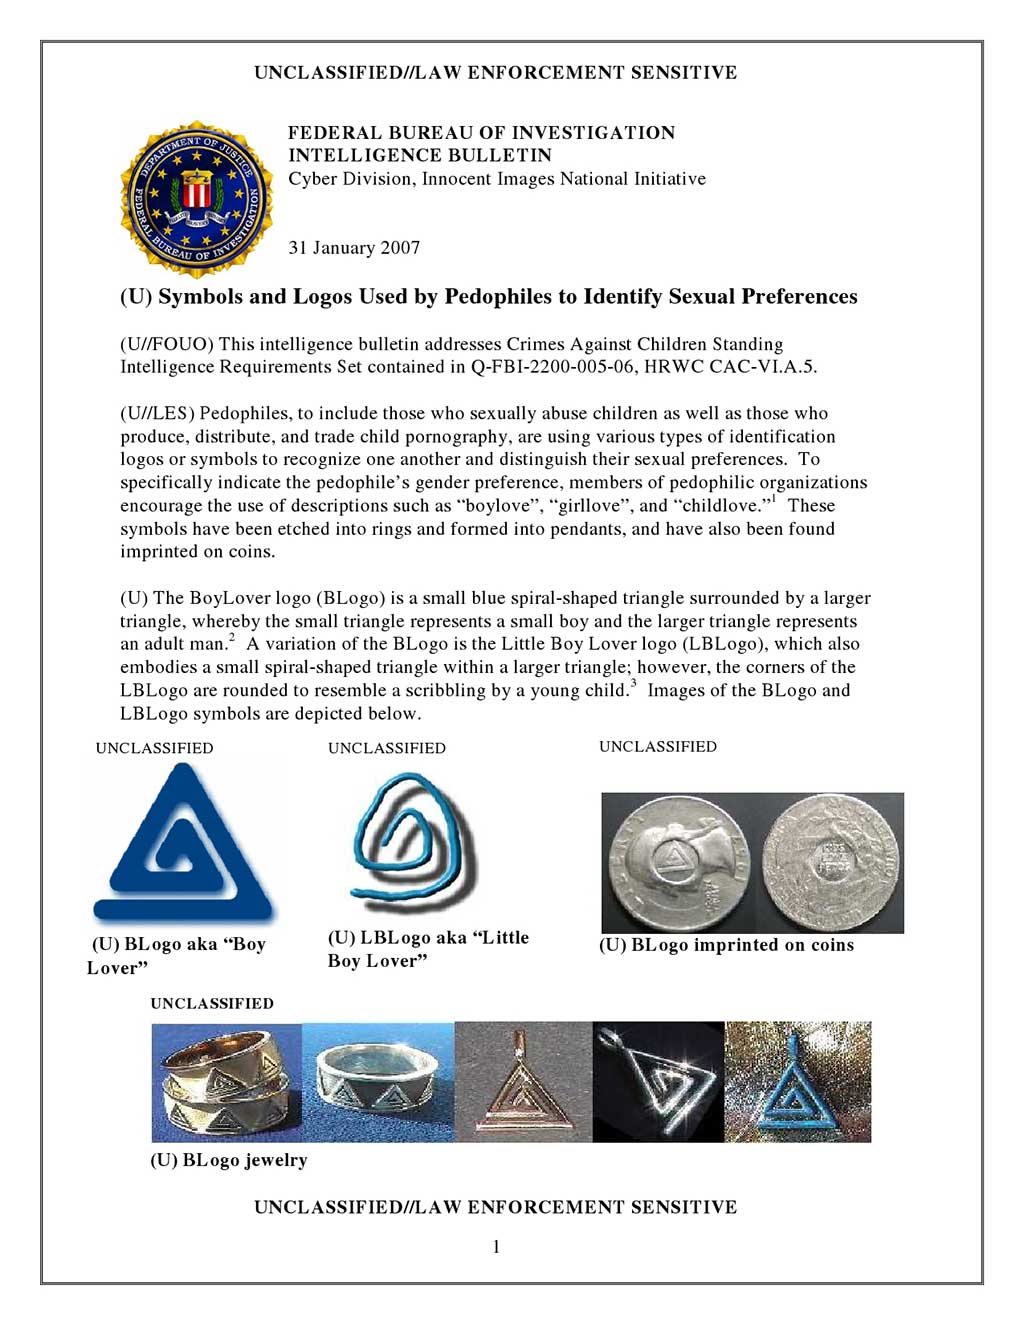 Slave lords pizzagate portal symbol fbi unclassified if this is just a mistake it should be undone buycottarizona